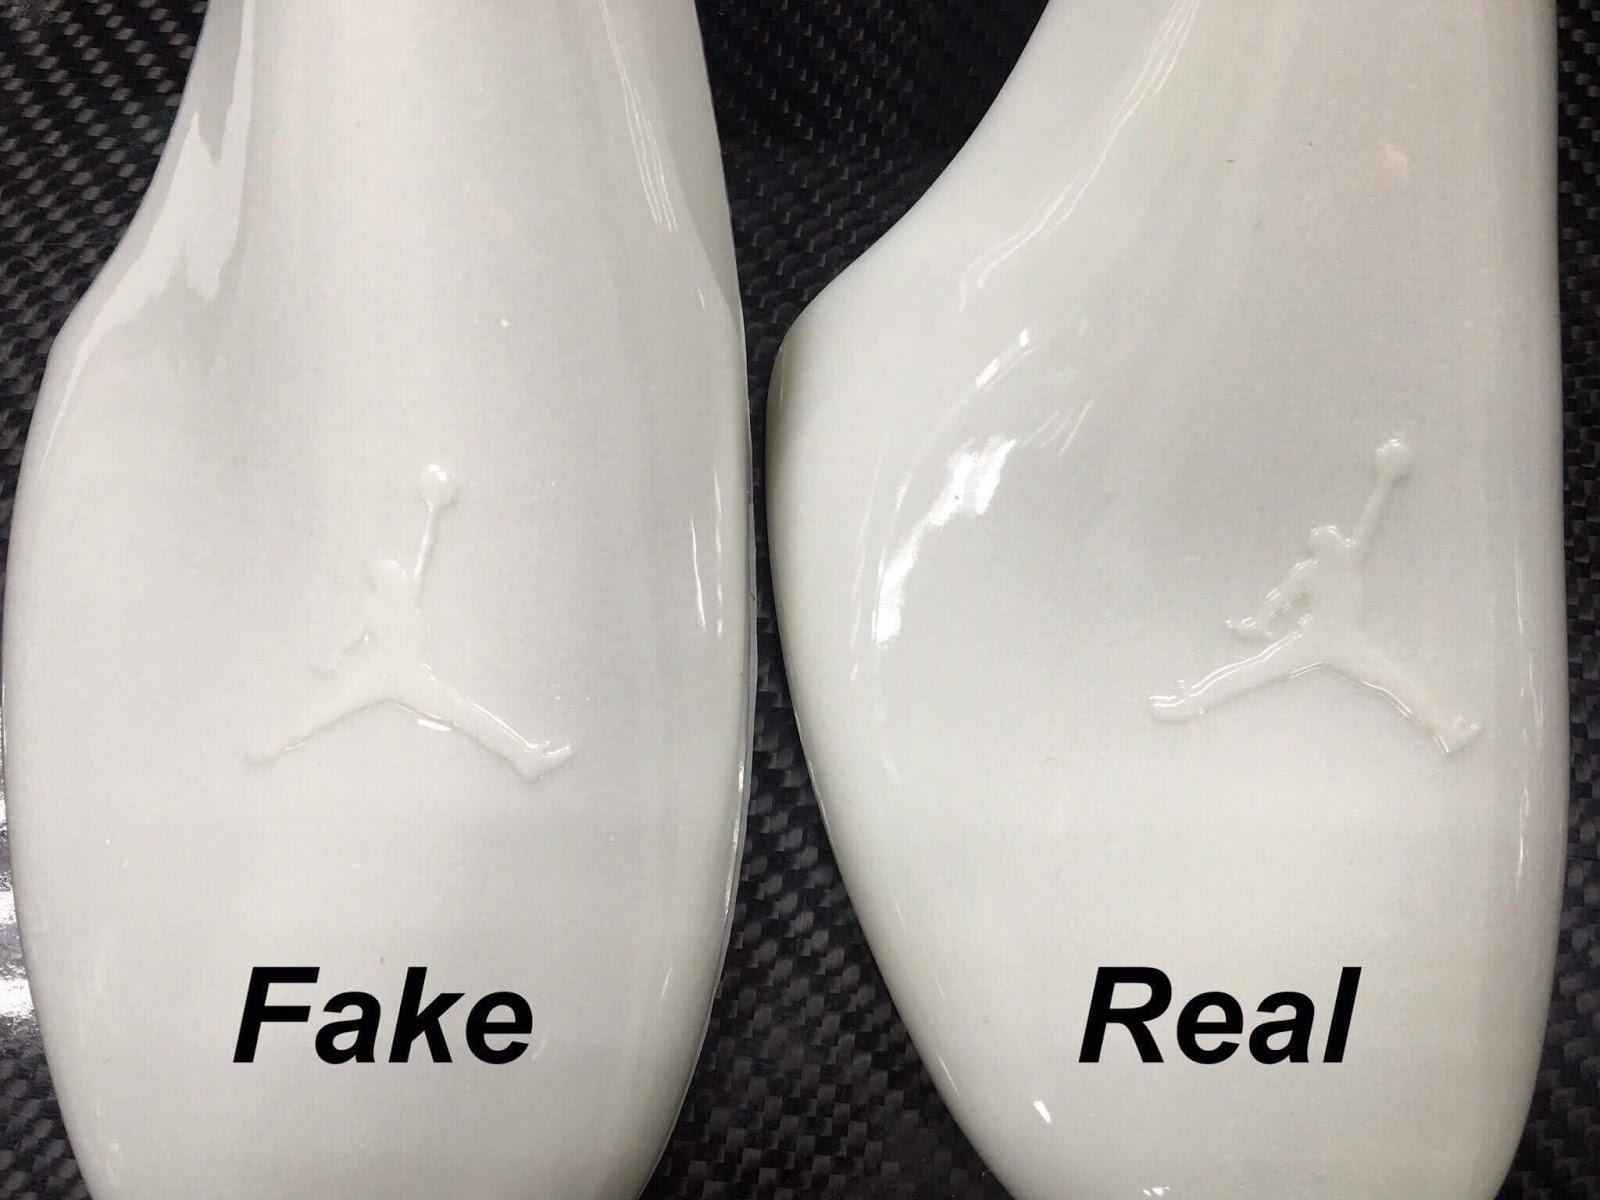 How To Clean Fake Suede Shoes At Home